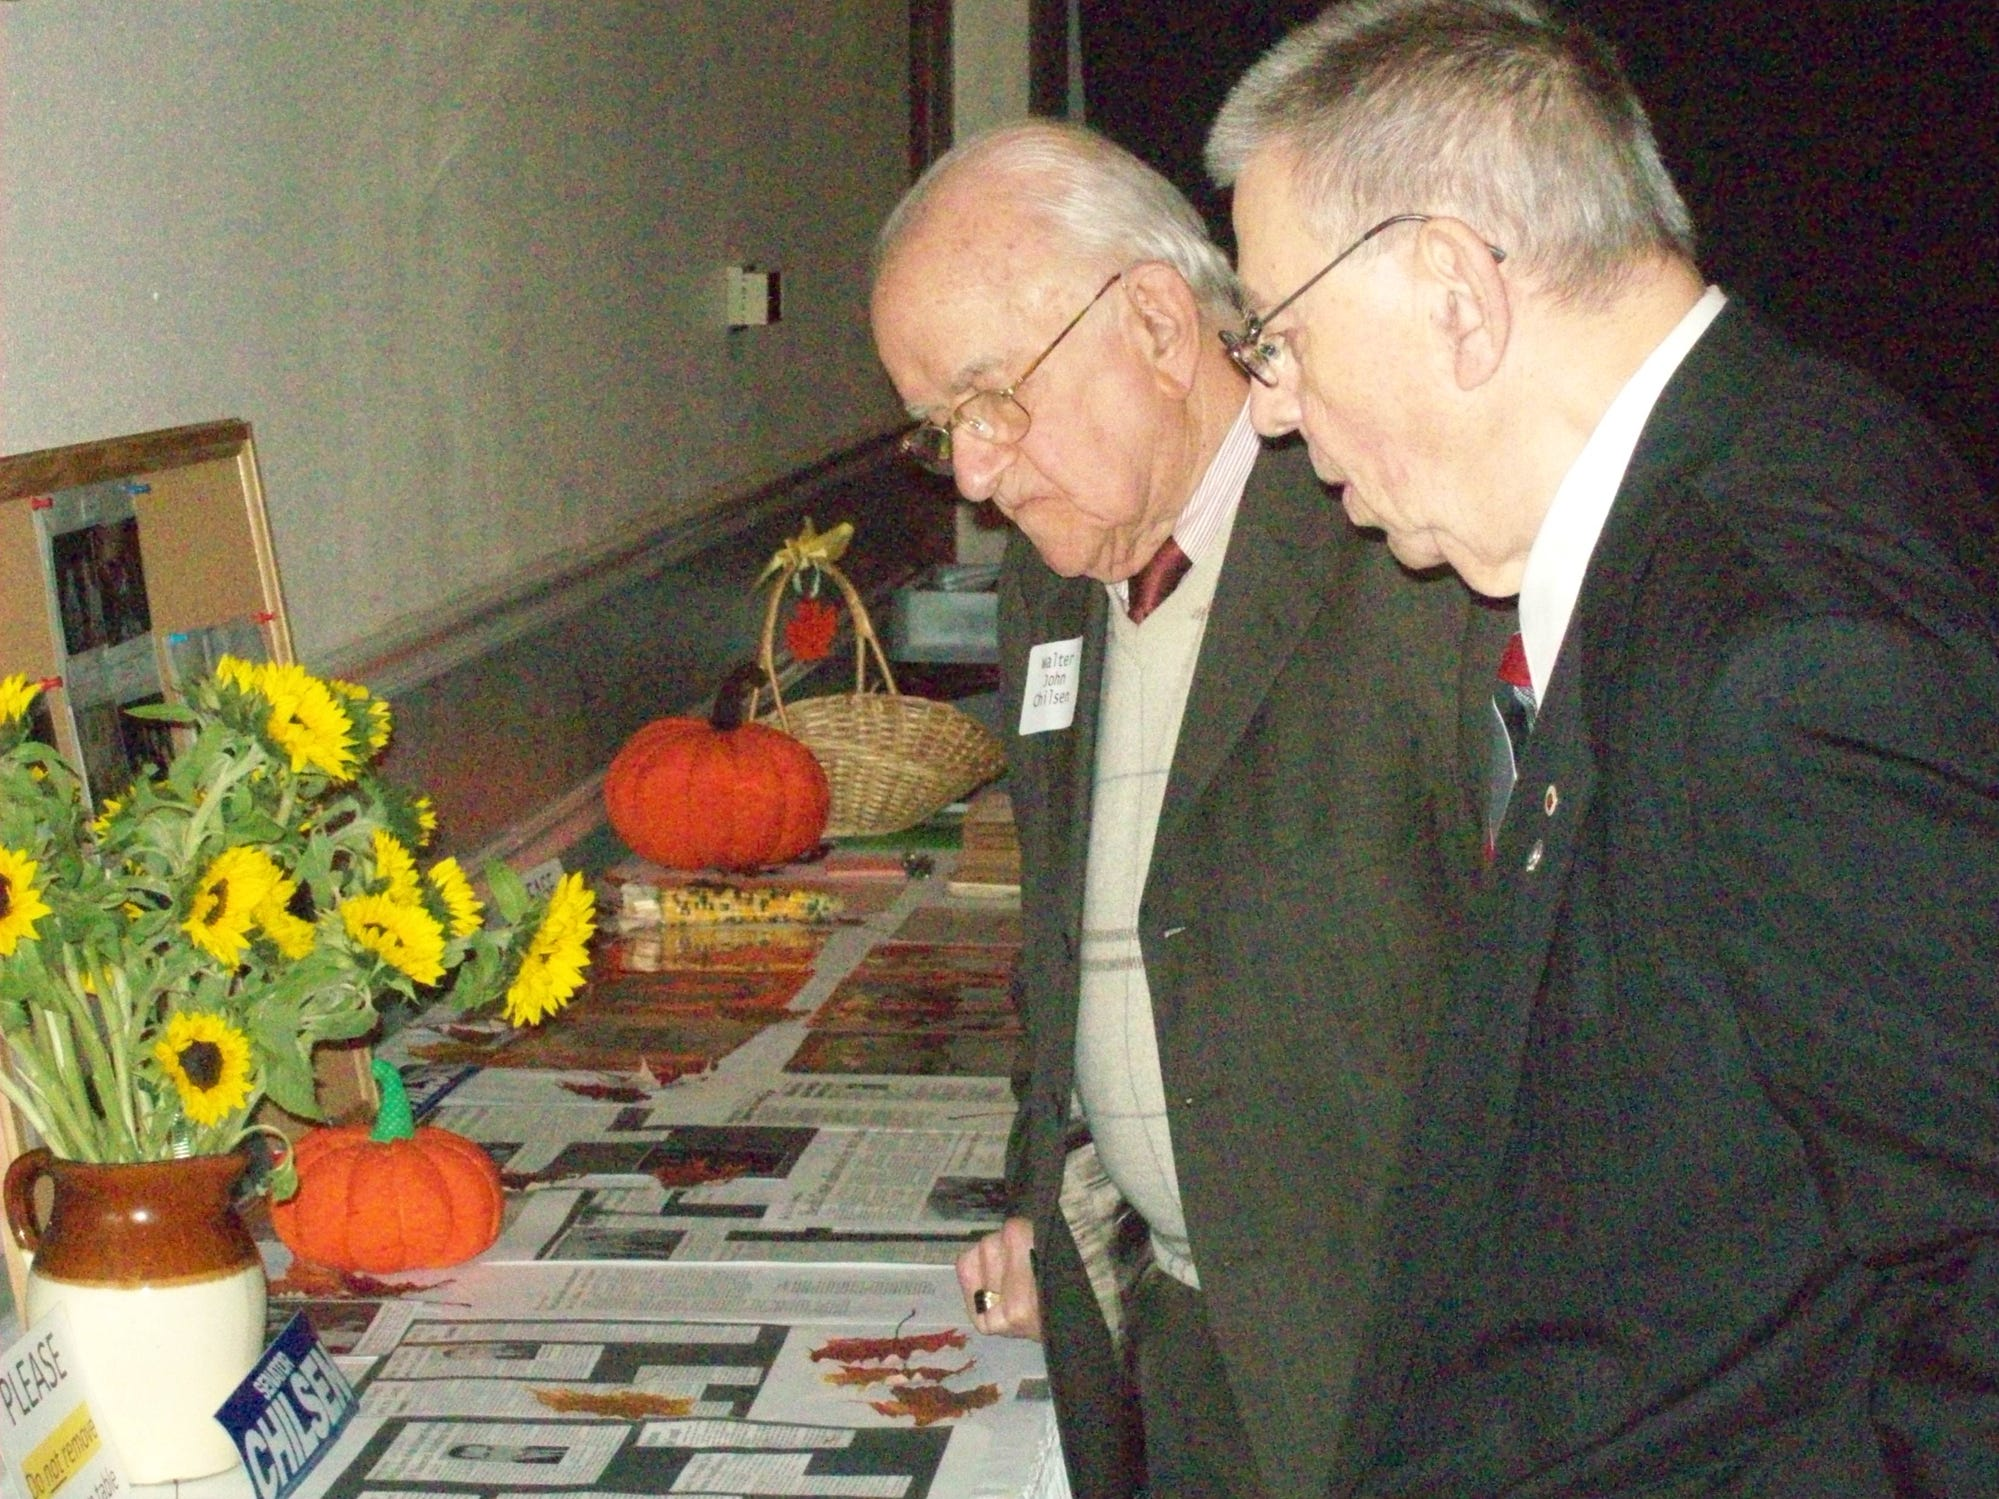 Walter John Chilsen, left and long-time friend, Robert Kasmerchak, look at old newspaper clippings Friday, Nov. 4, 2011, that detailed Chilsen's 24-year career in the Wisconsin senate during a celebration Friday of Chilsen's life and upcoming 88th birthday.